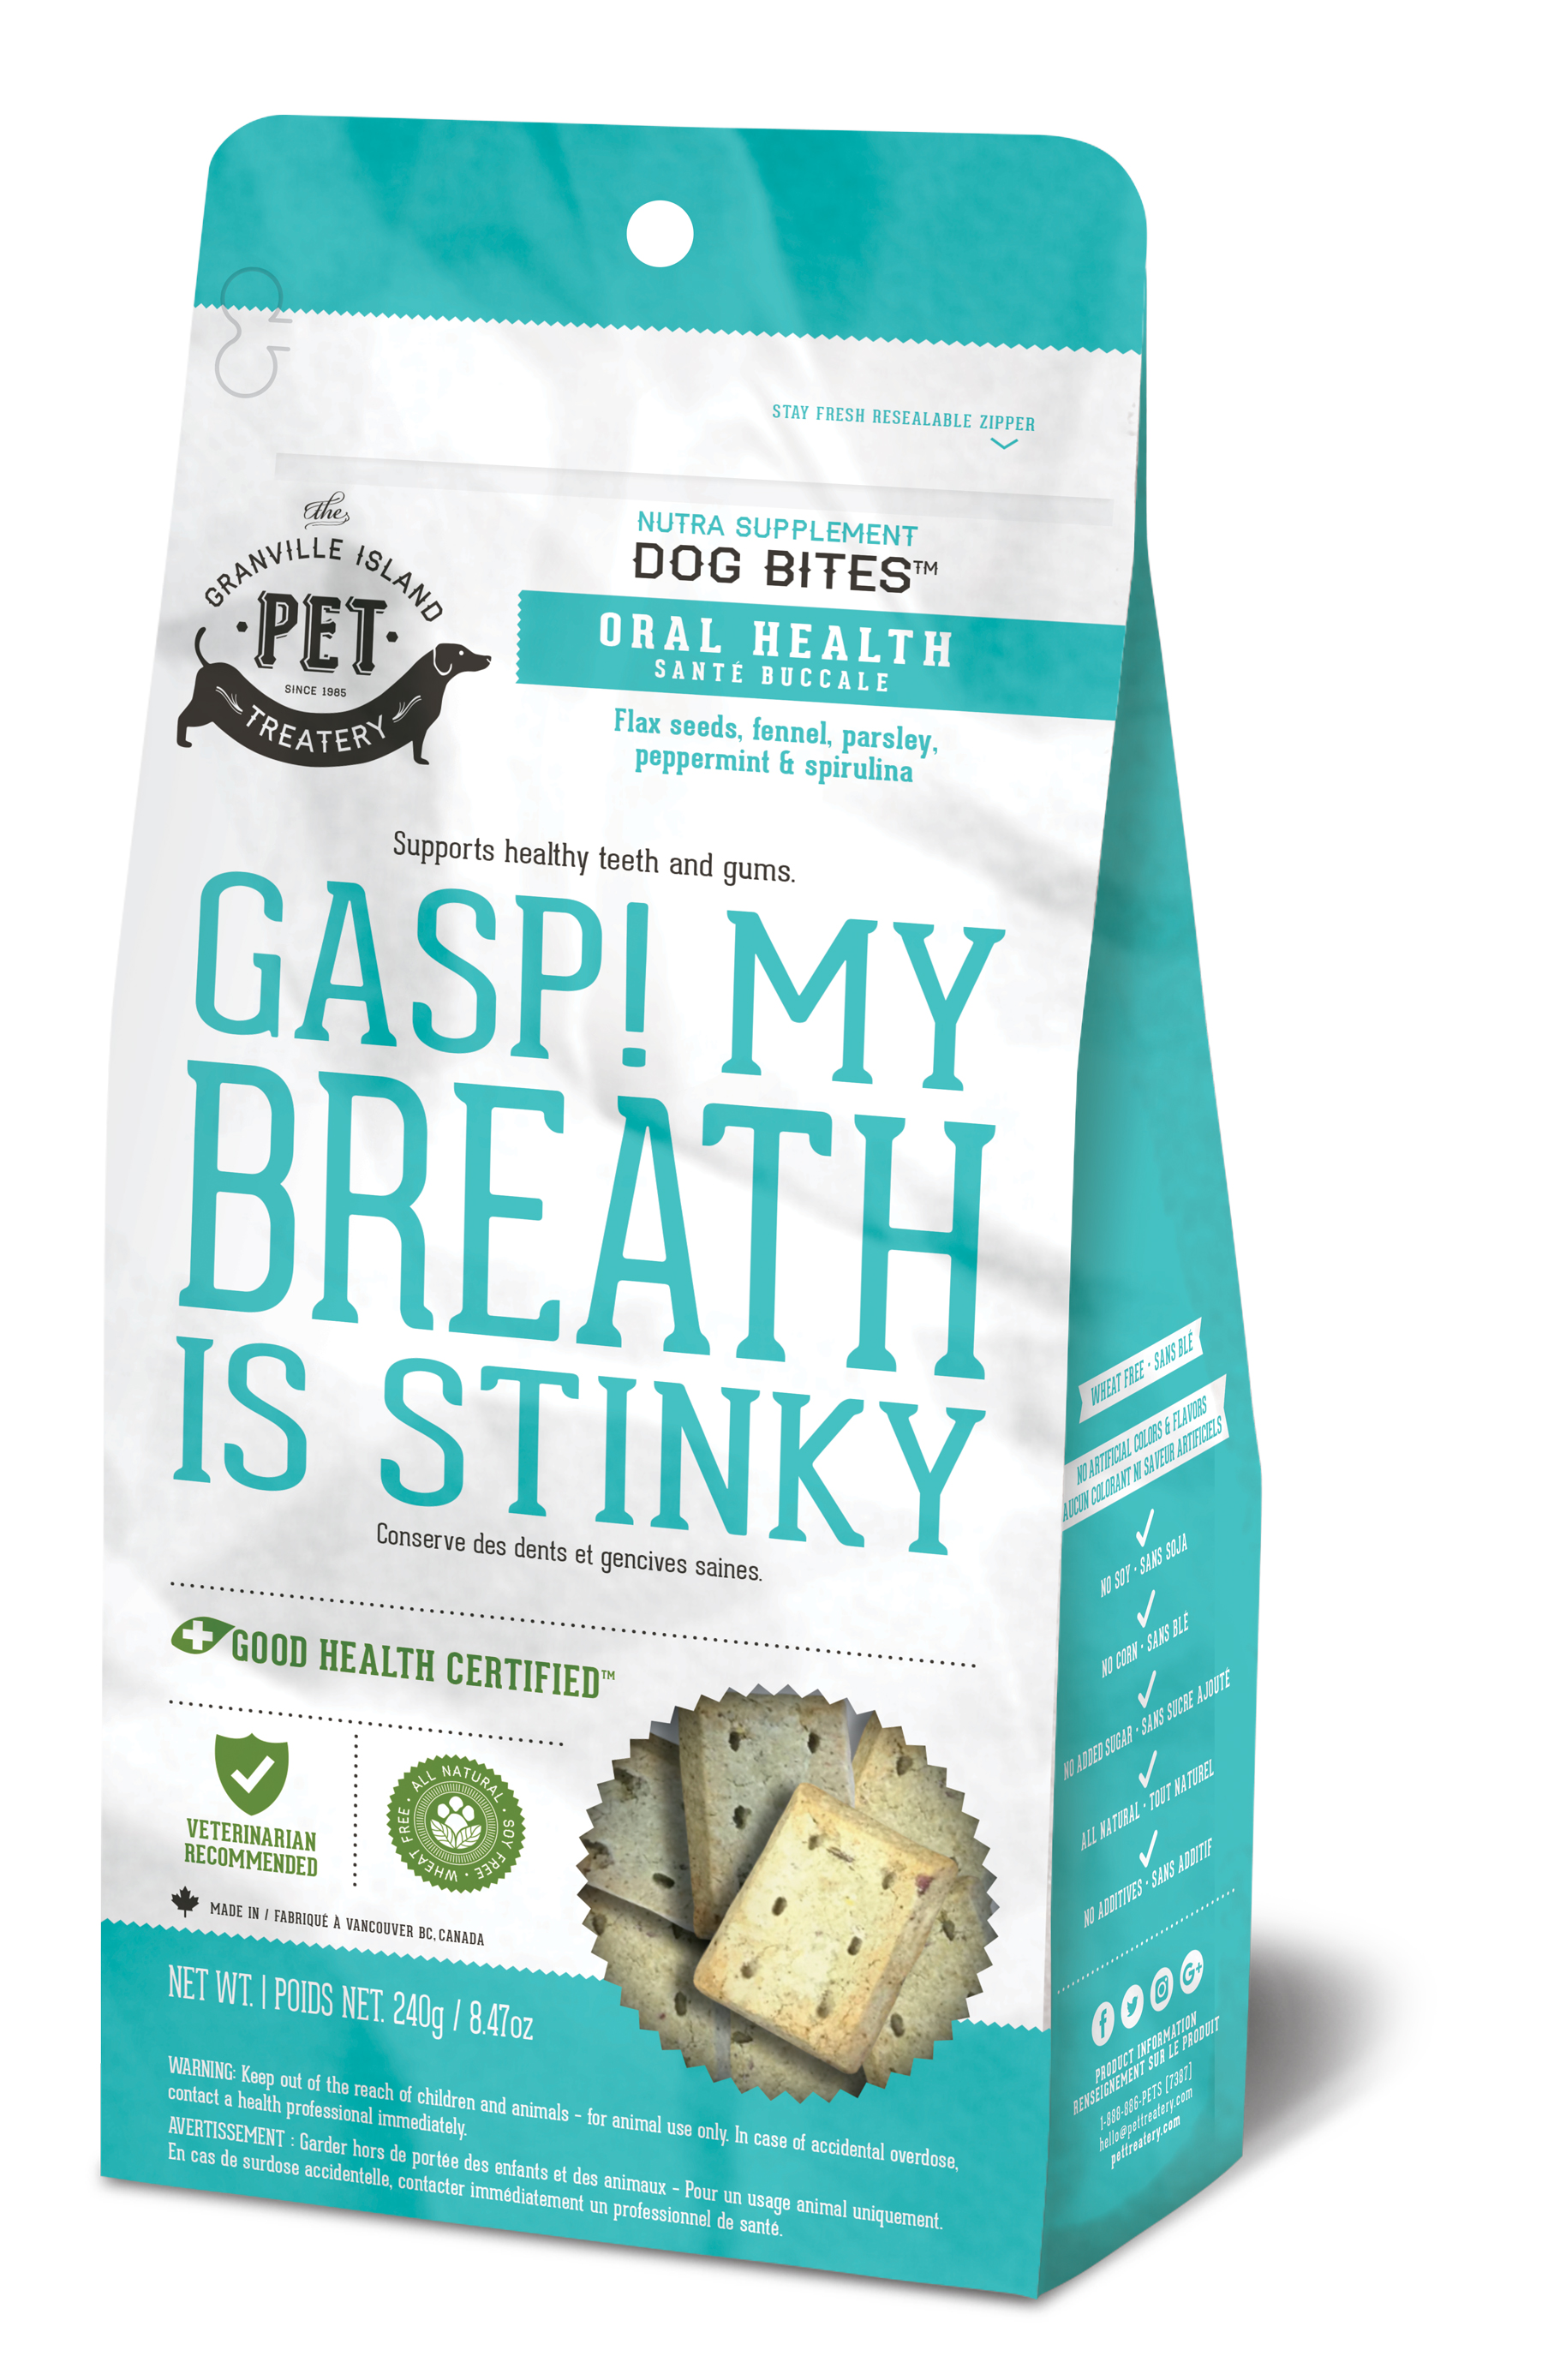 Granville Island Pet Treatery Oral Health Gasp! My Breath is Stinky Dog Treats Image